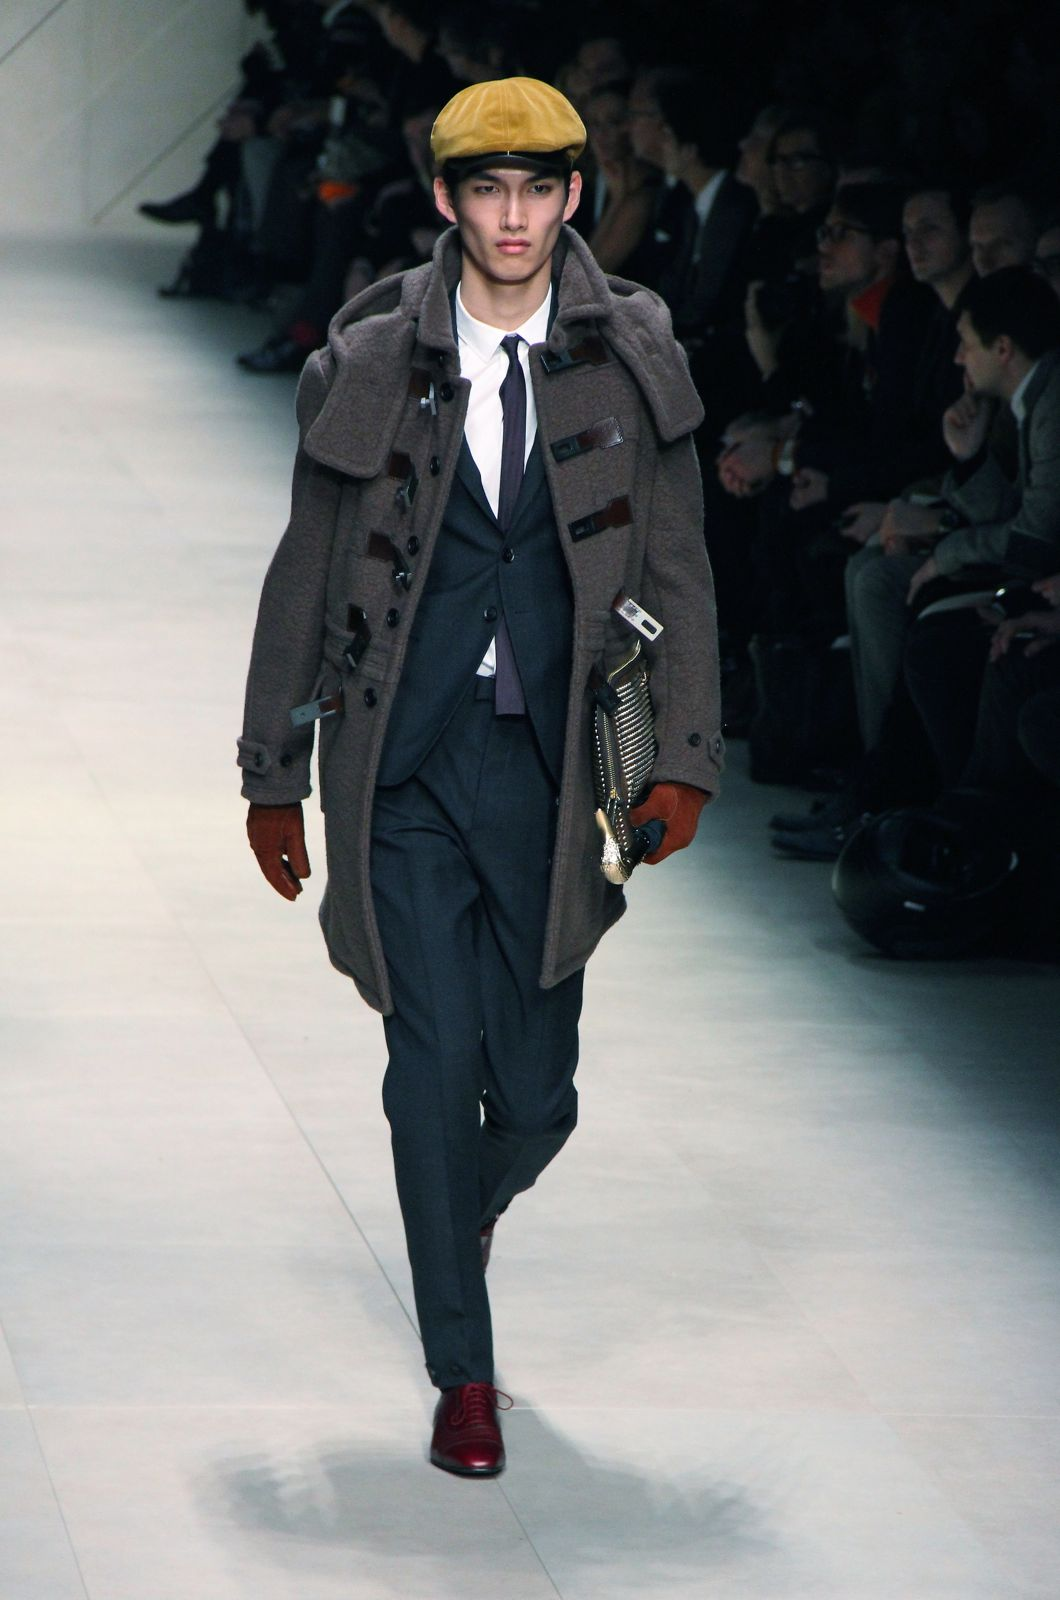 Burberry Prorsum Fall Winter 2012 Men Fashion Show